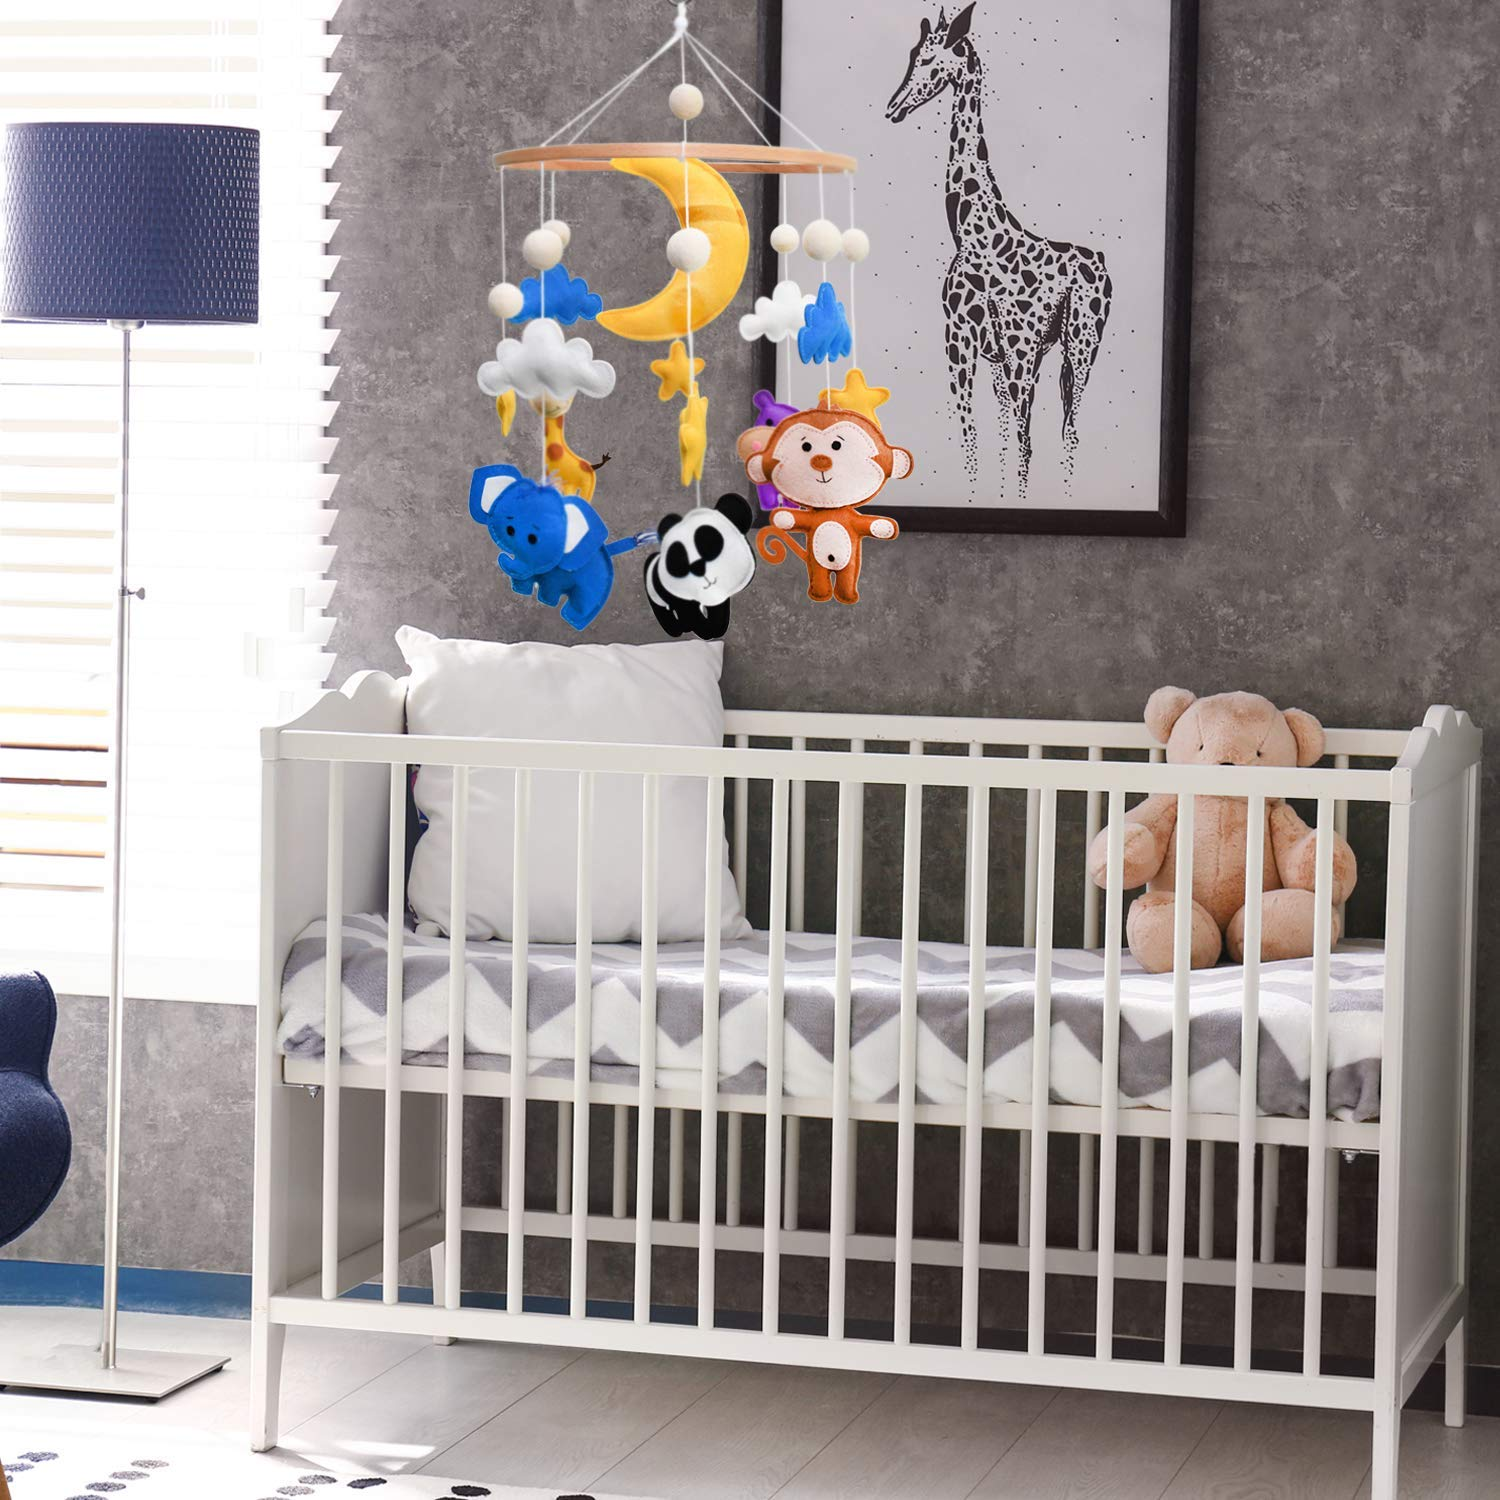 Thinks that hangs above a crib